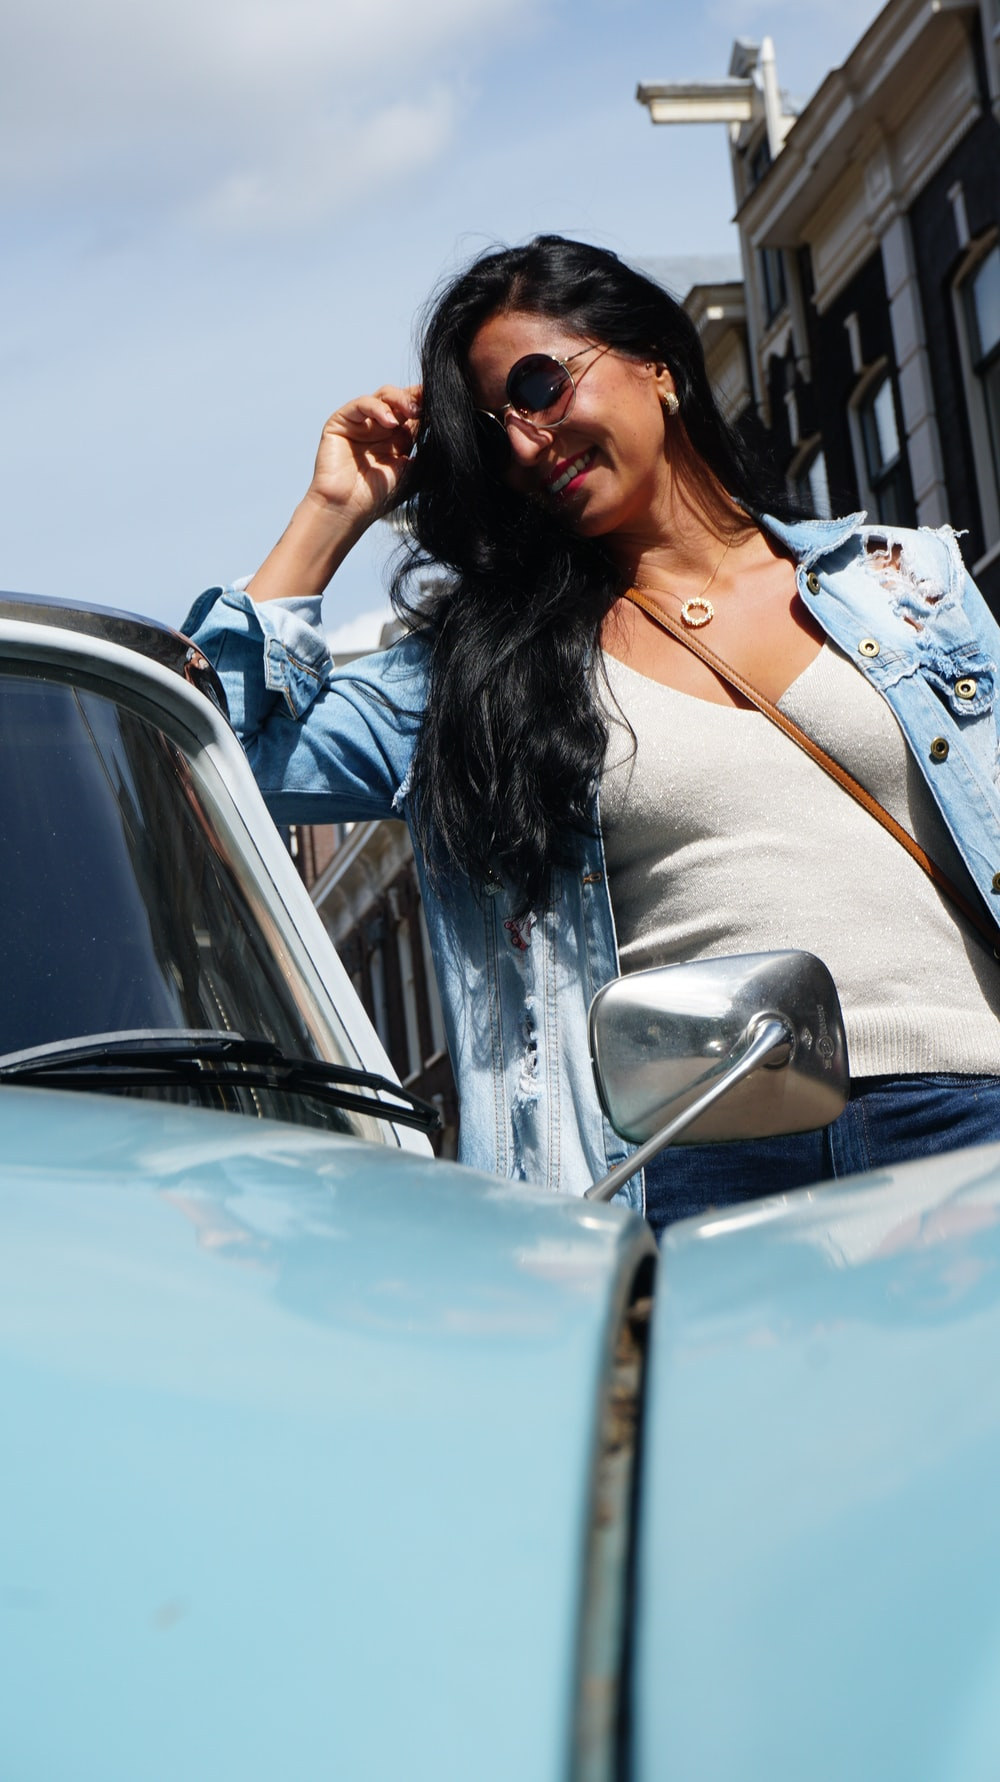 woman in white long sleeve shirt sitting on car